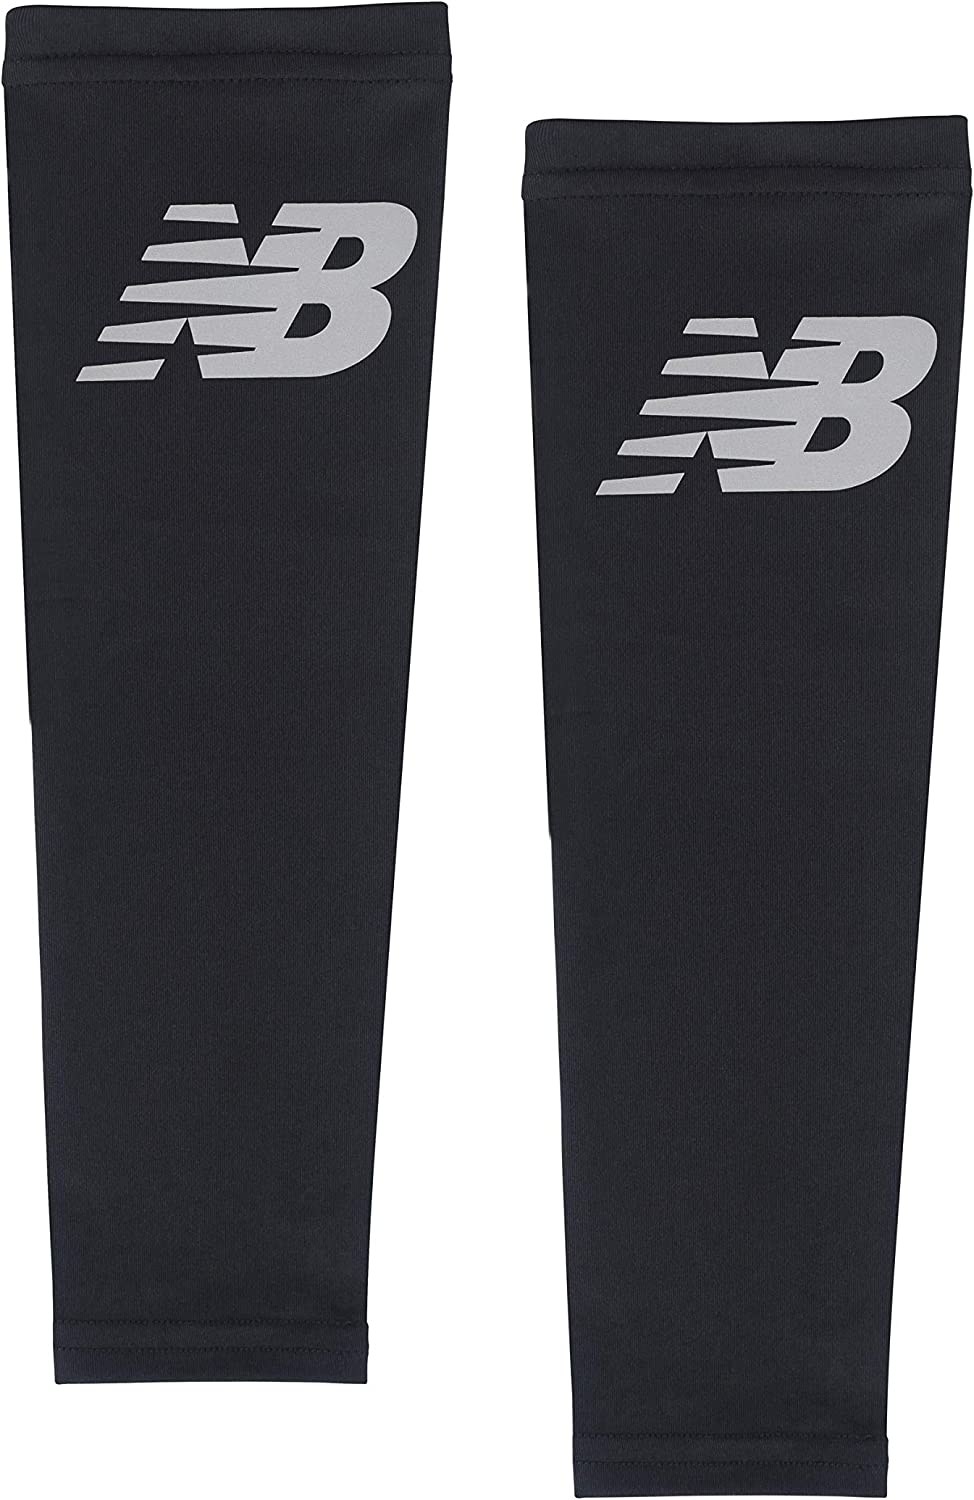 New Balance Unisex Outdoor Sports Compression Leg Sleeve and Warmer, Black